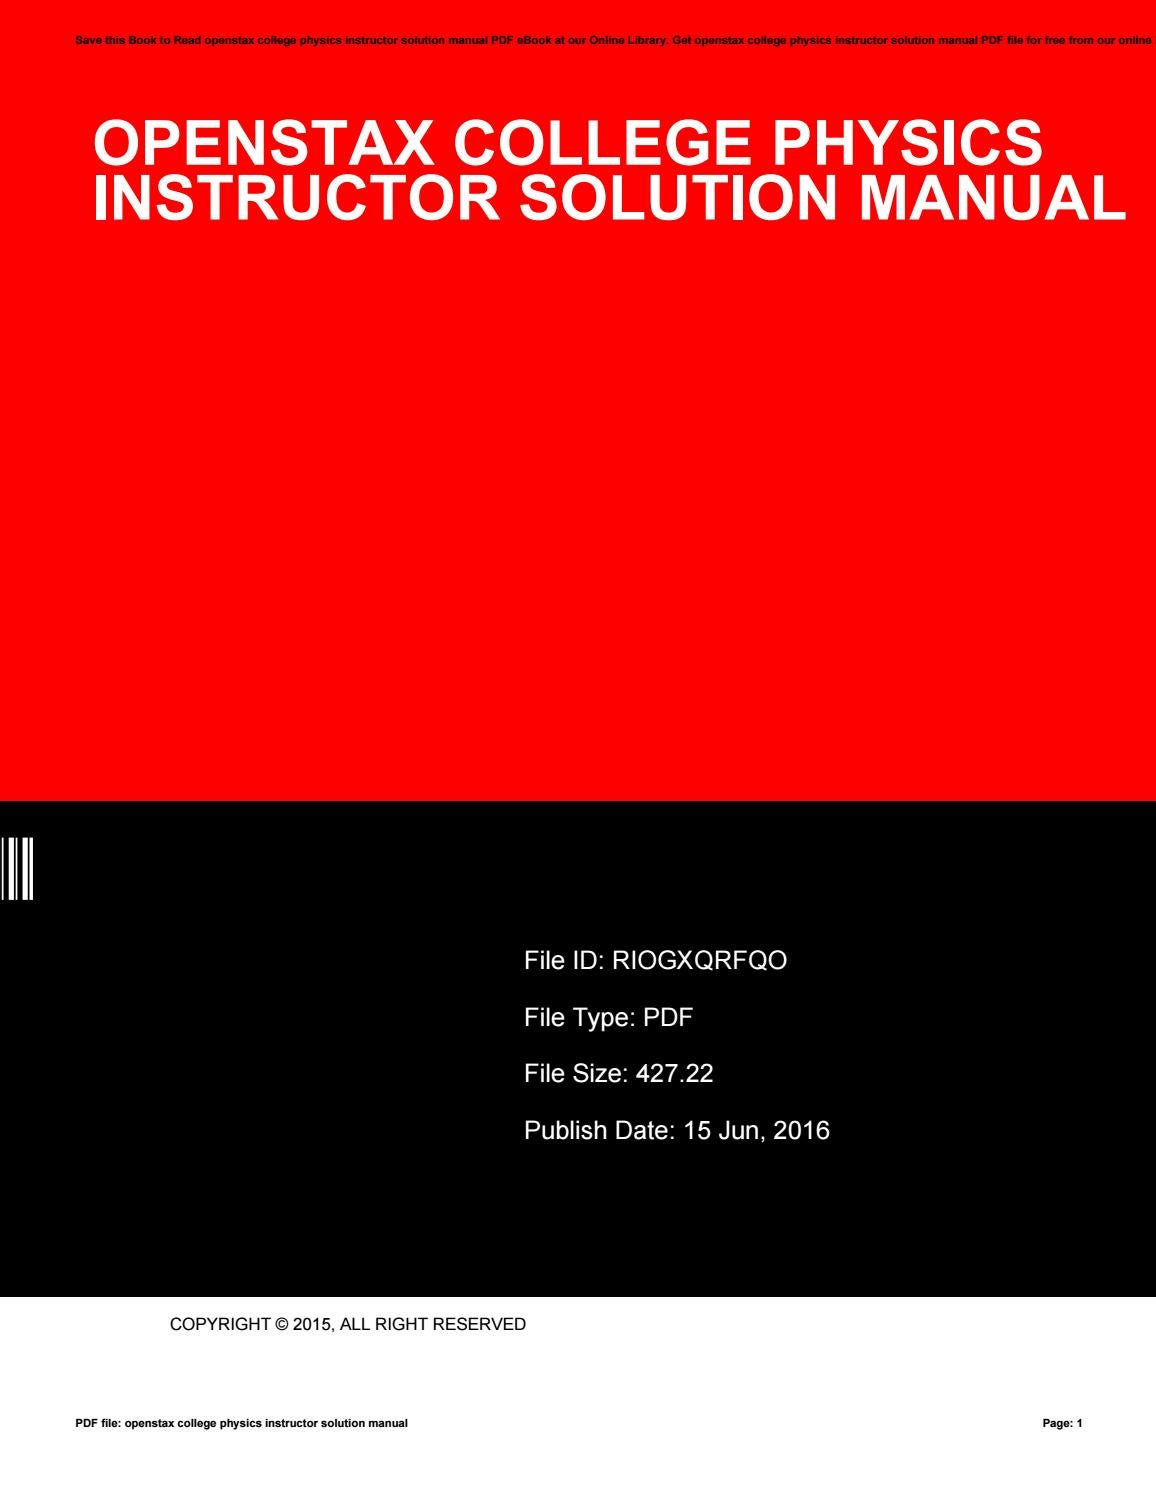 Openstax college physics instructor solution manual by TerryAnderson4416 -  issuu